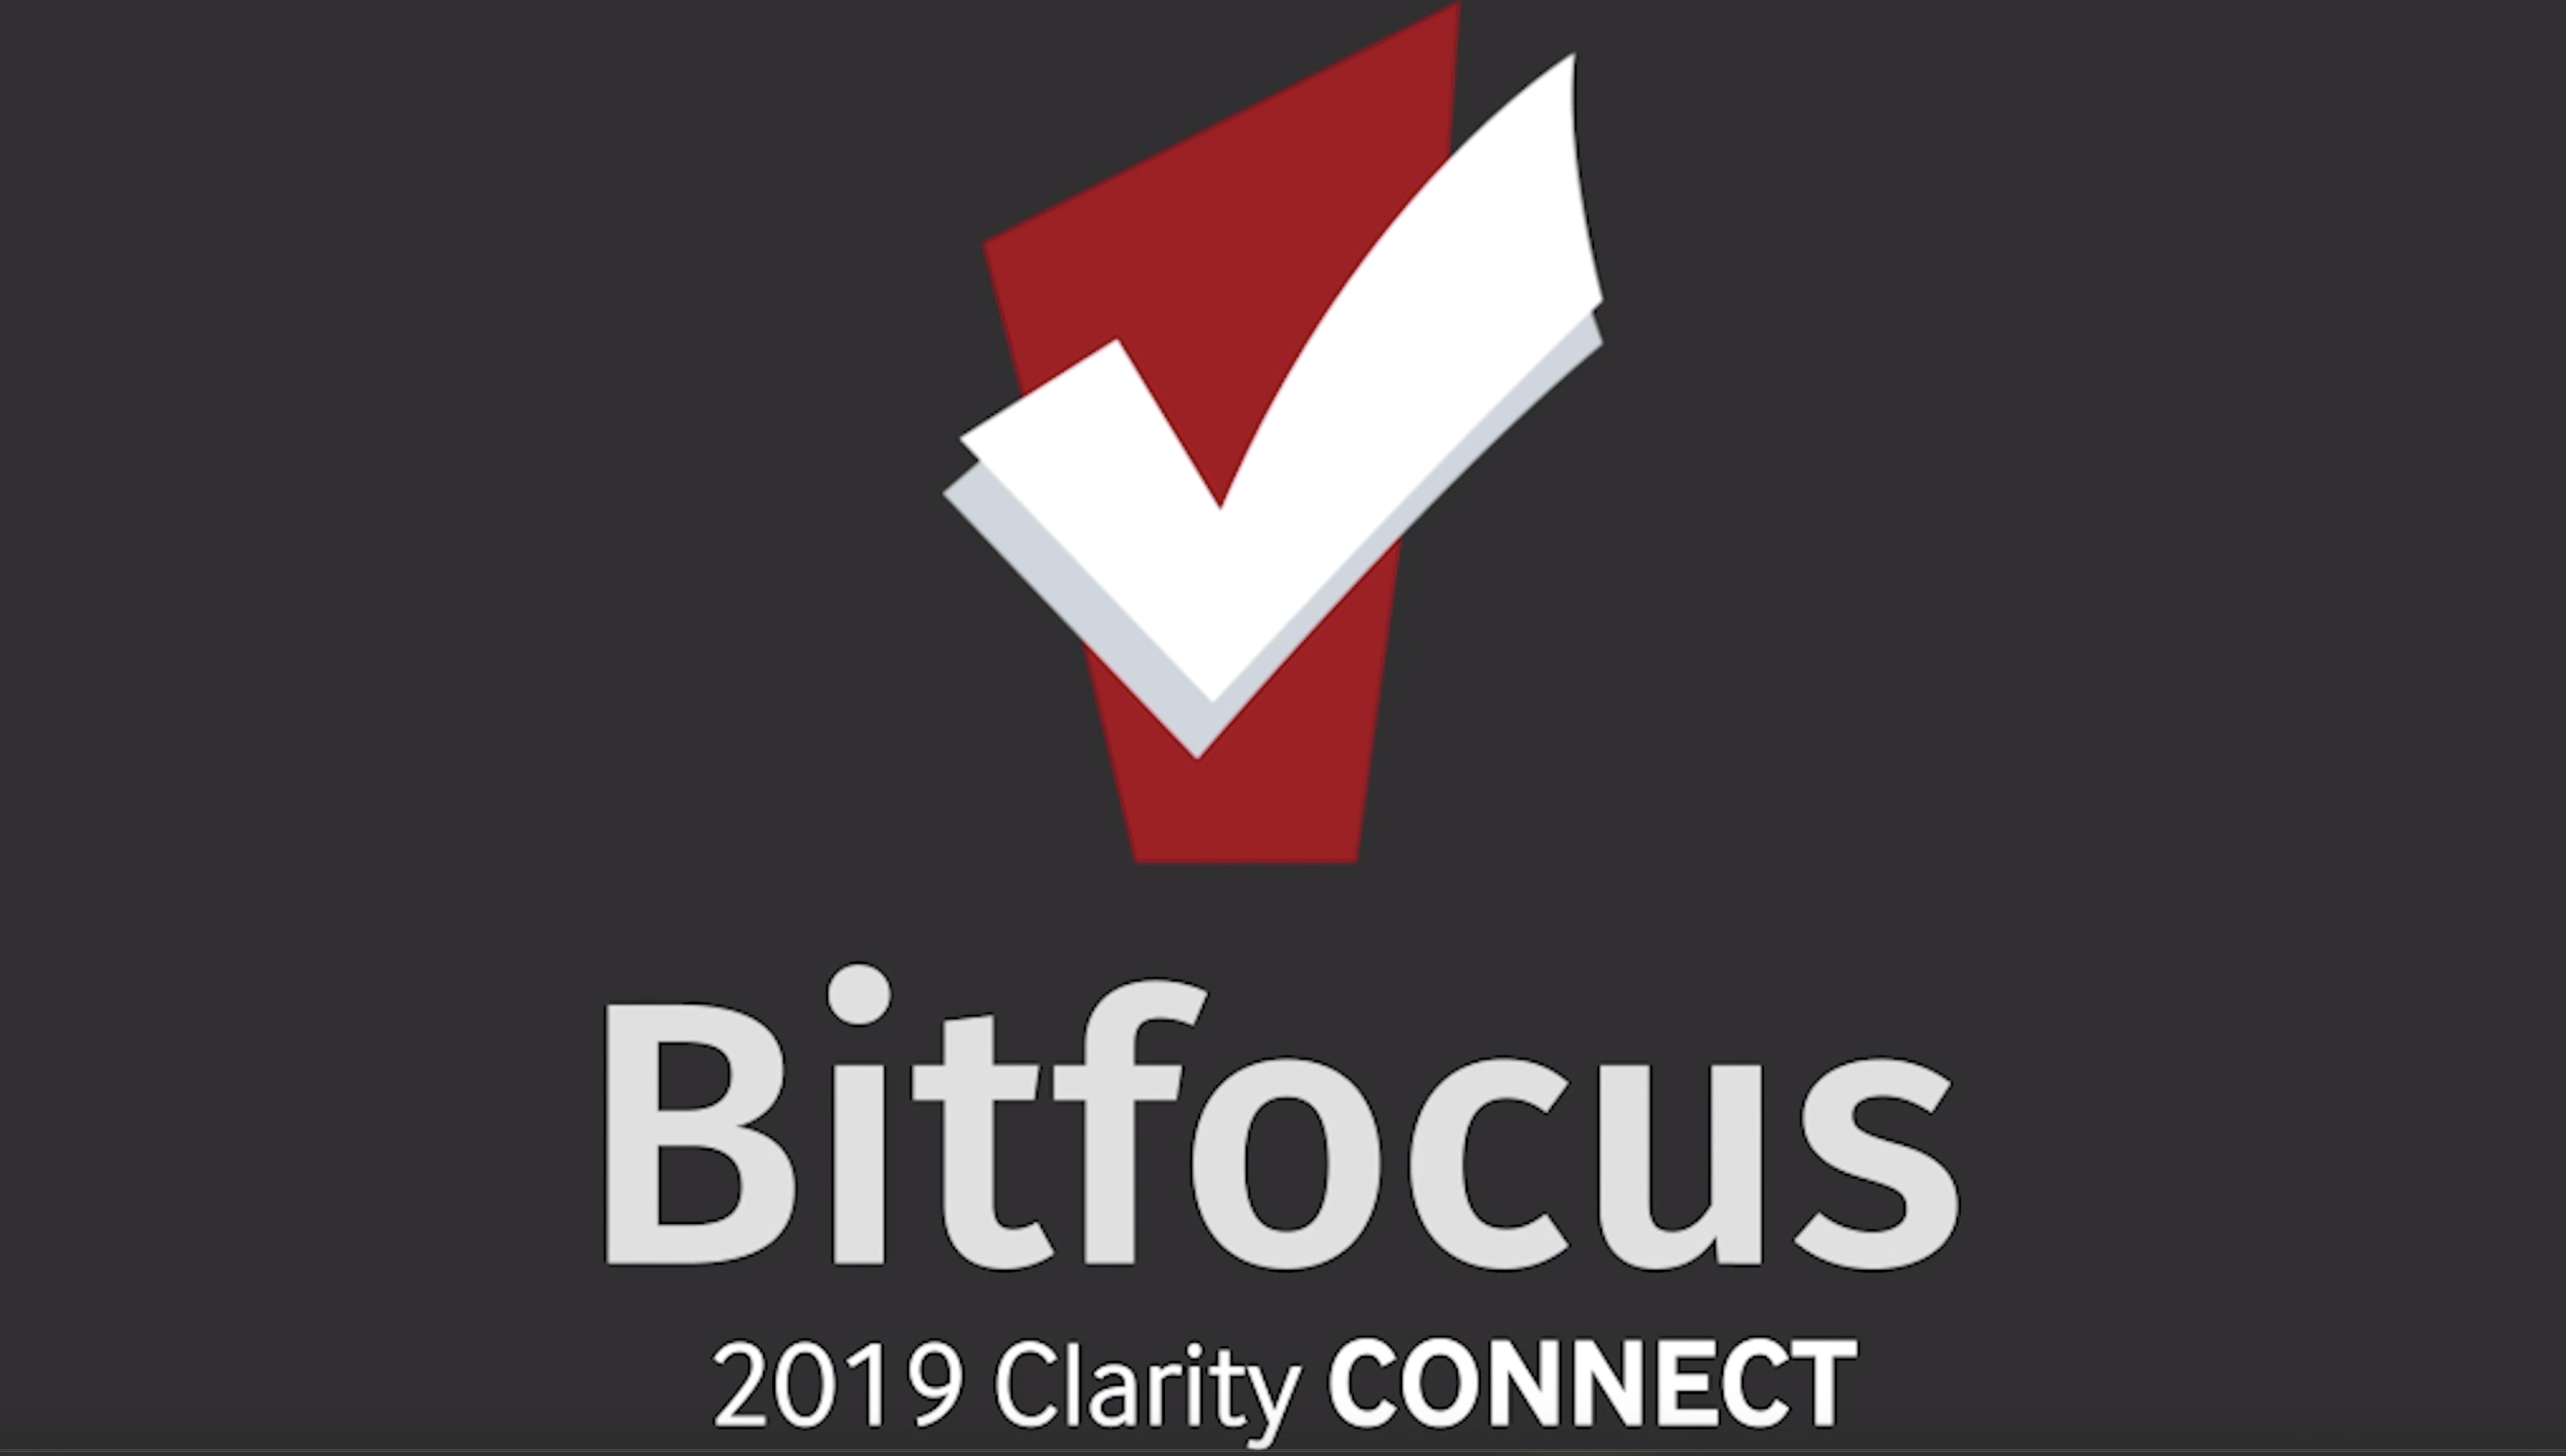 Clarity Connect 2019: System Administration - Building Effective Trainings and Training Plans